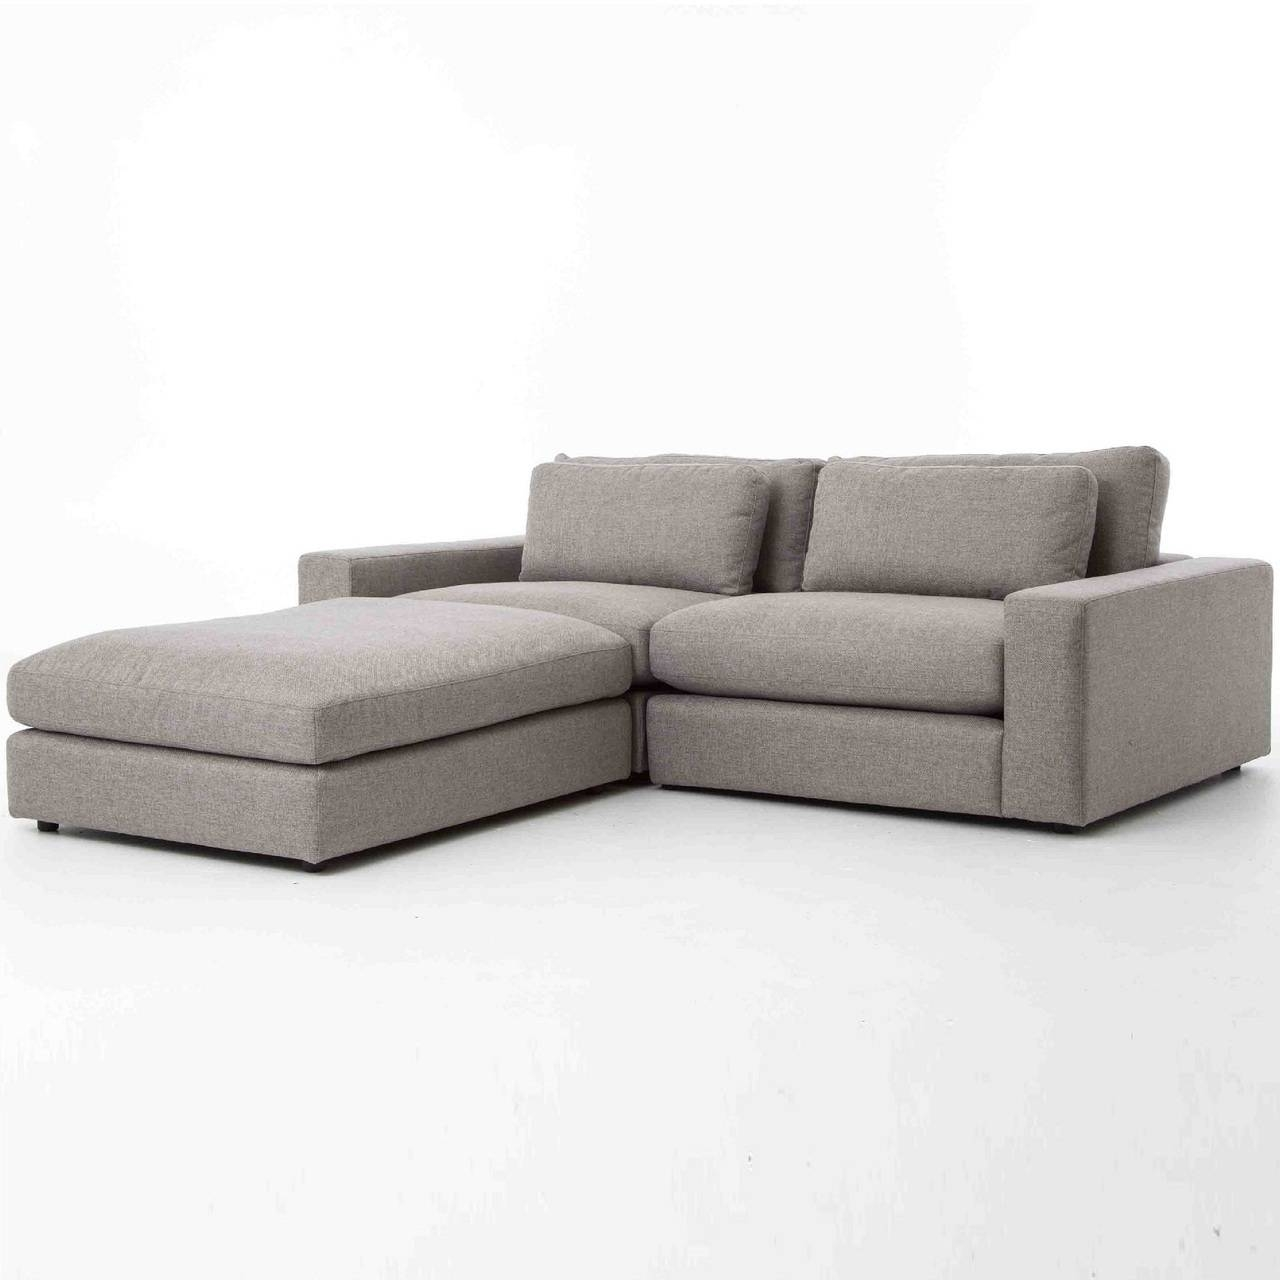 Astonishing Small Sectional Sofas Images Design Inspiration regarding Modern Small Sectional Sofas (Image 1 of 15)